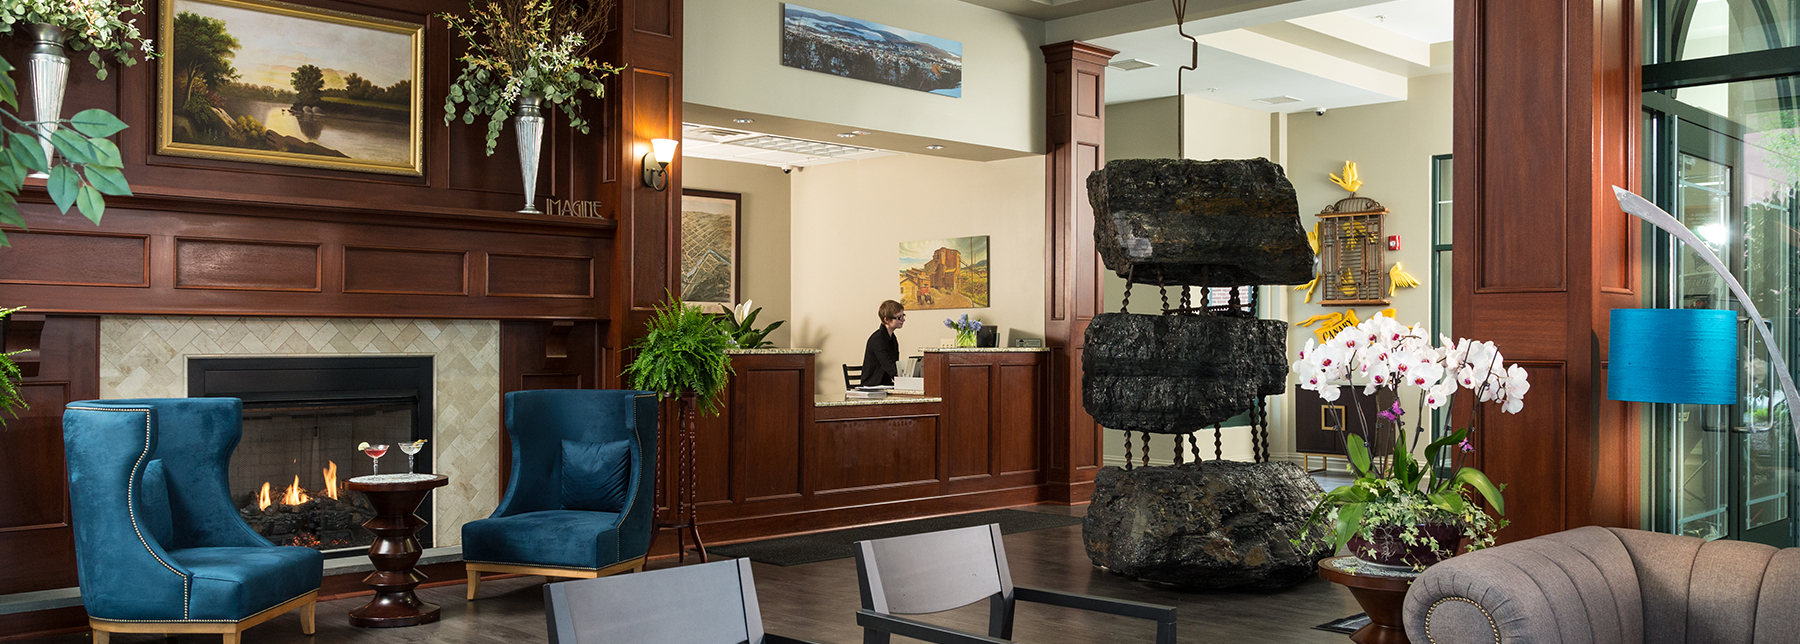 Hotel Anthracite, Carbondale, PA, Lobby